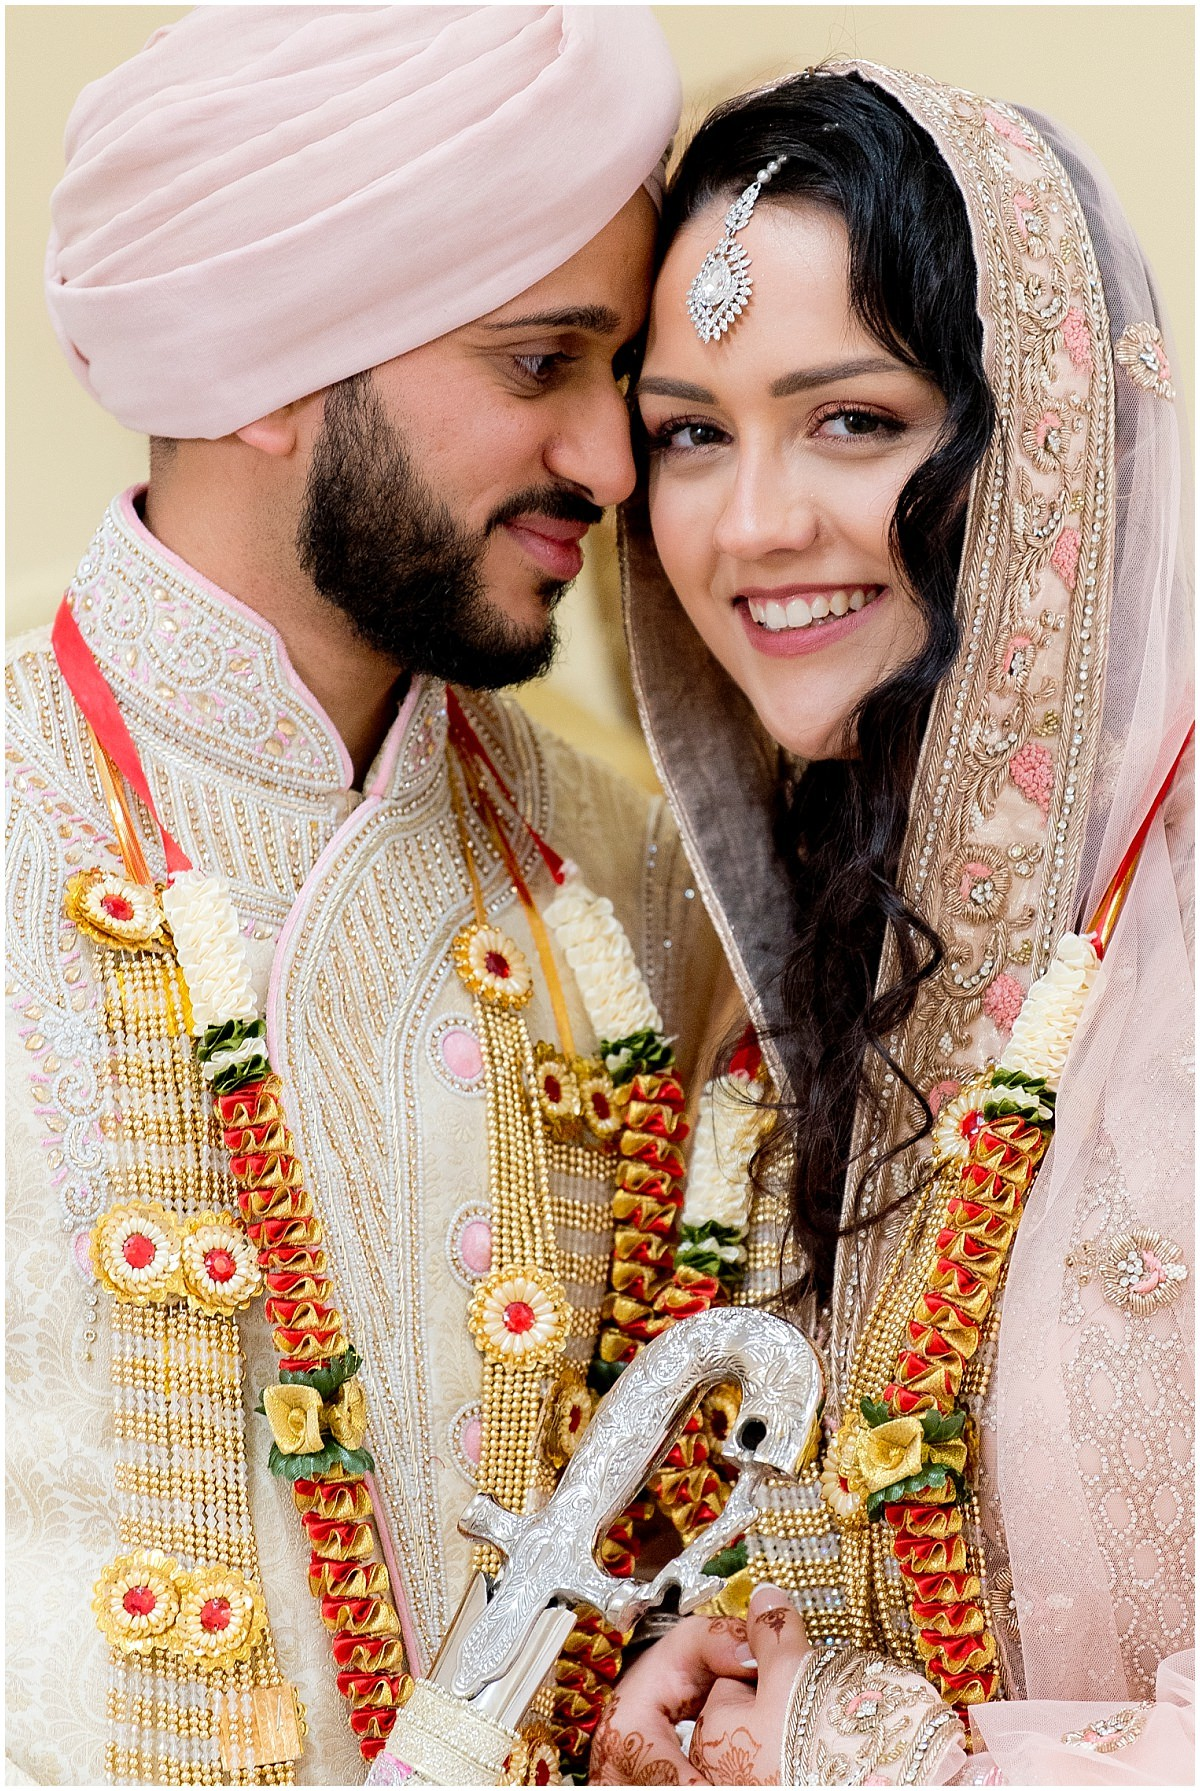 Sikh Wedding photography bride and groom